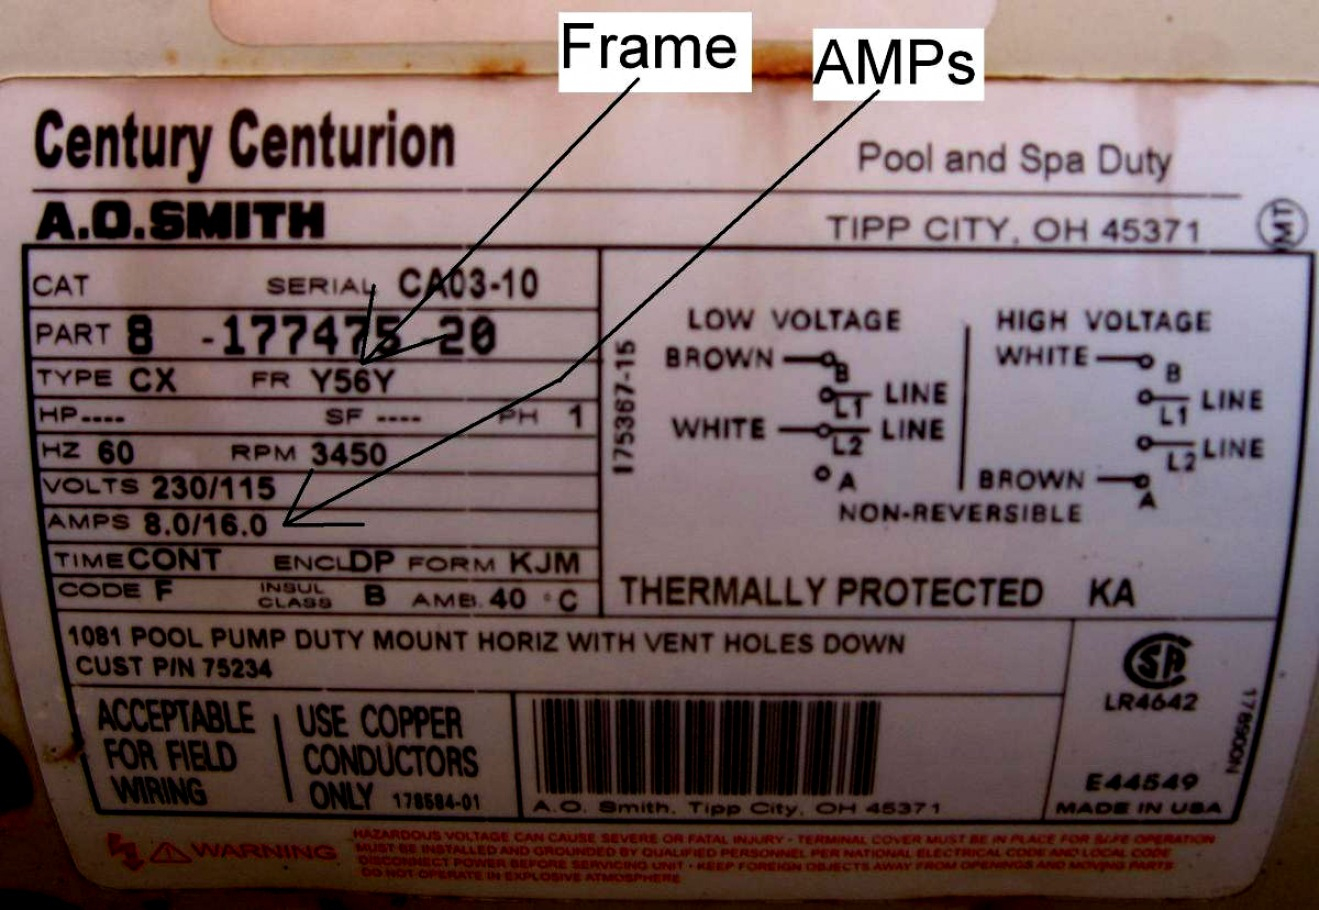 Wiring Diagram 115230 Motor Ao Smith - All Wiring Diagram Data - Century Ac Motor Wiring Diagram 115 230 Volts